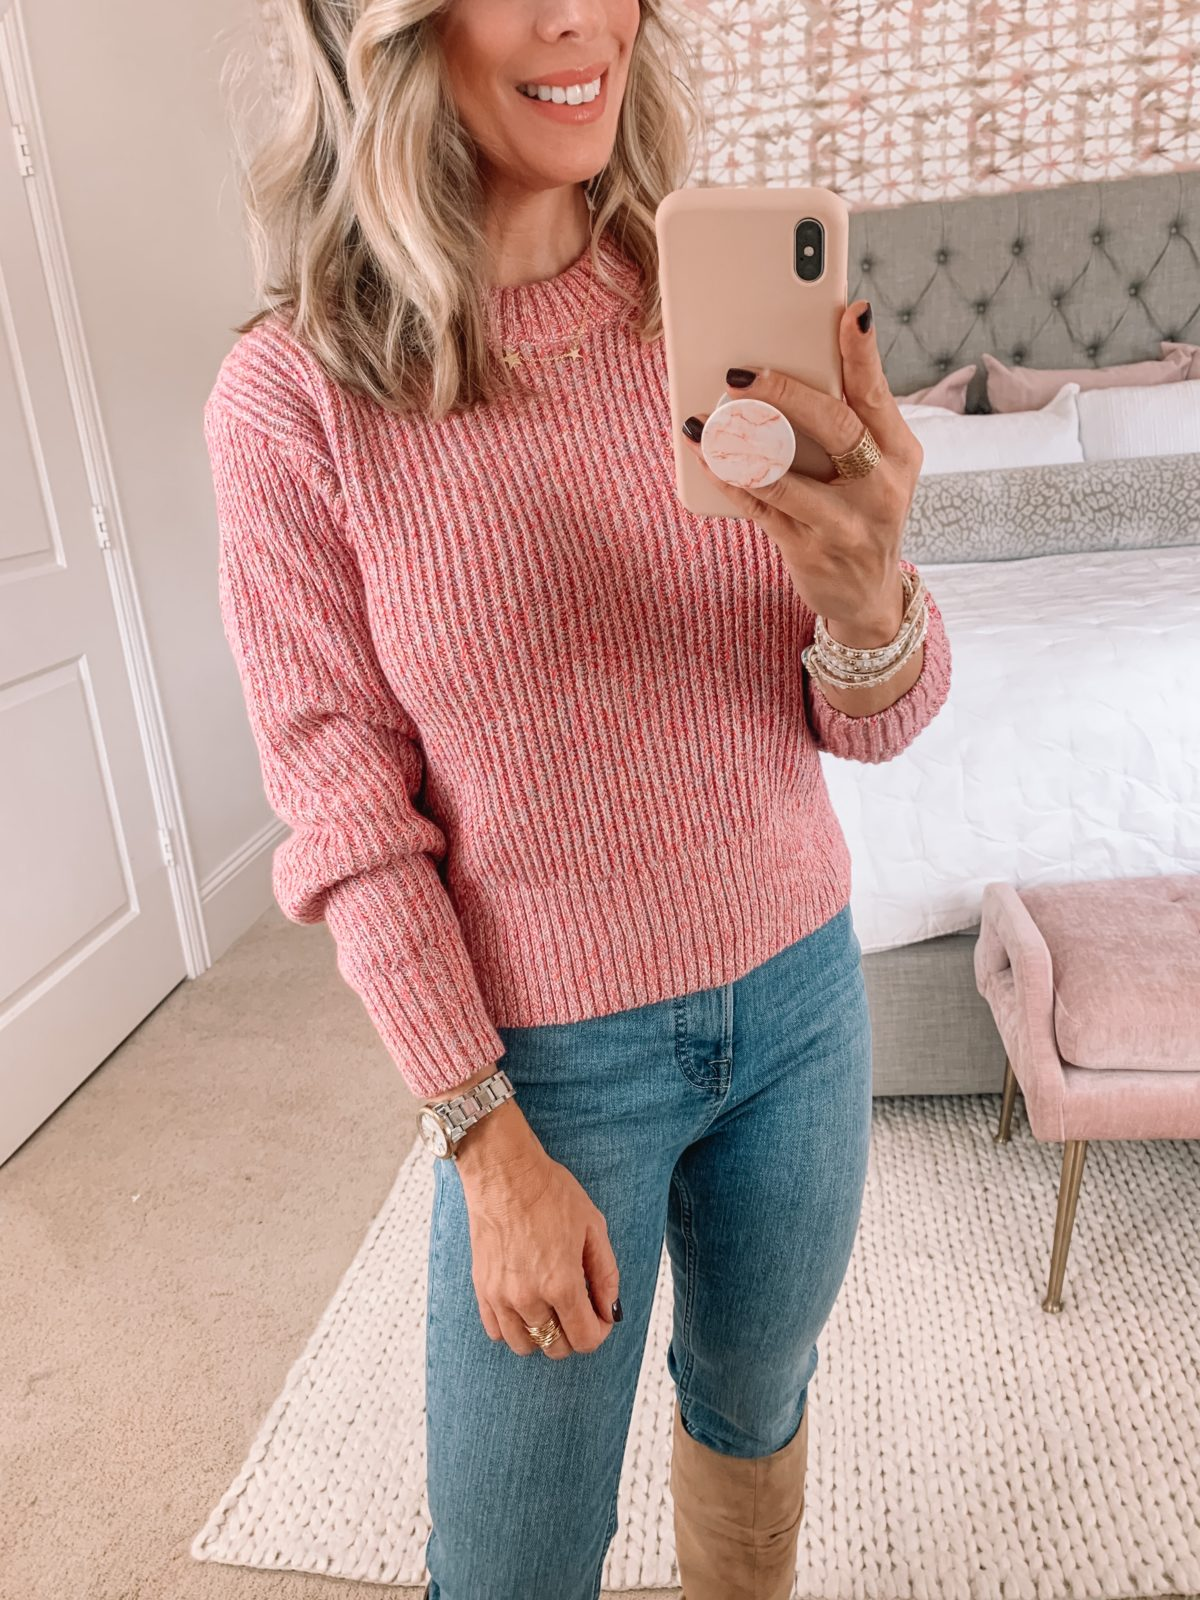 Walmart Fashion, Pink Marled Sweater, Jeans, Boots